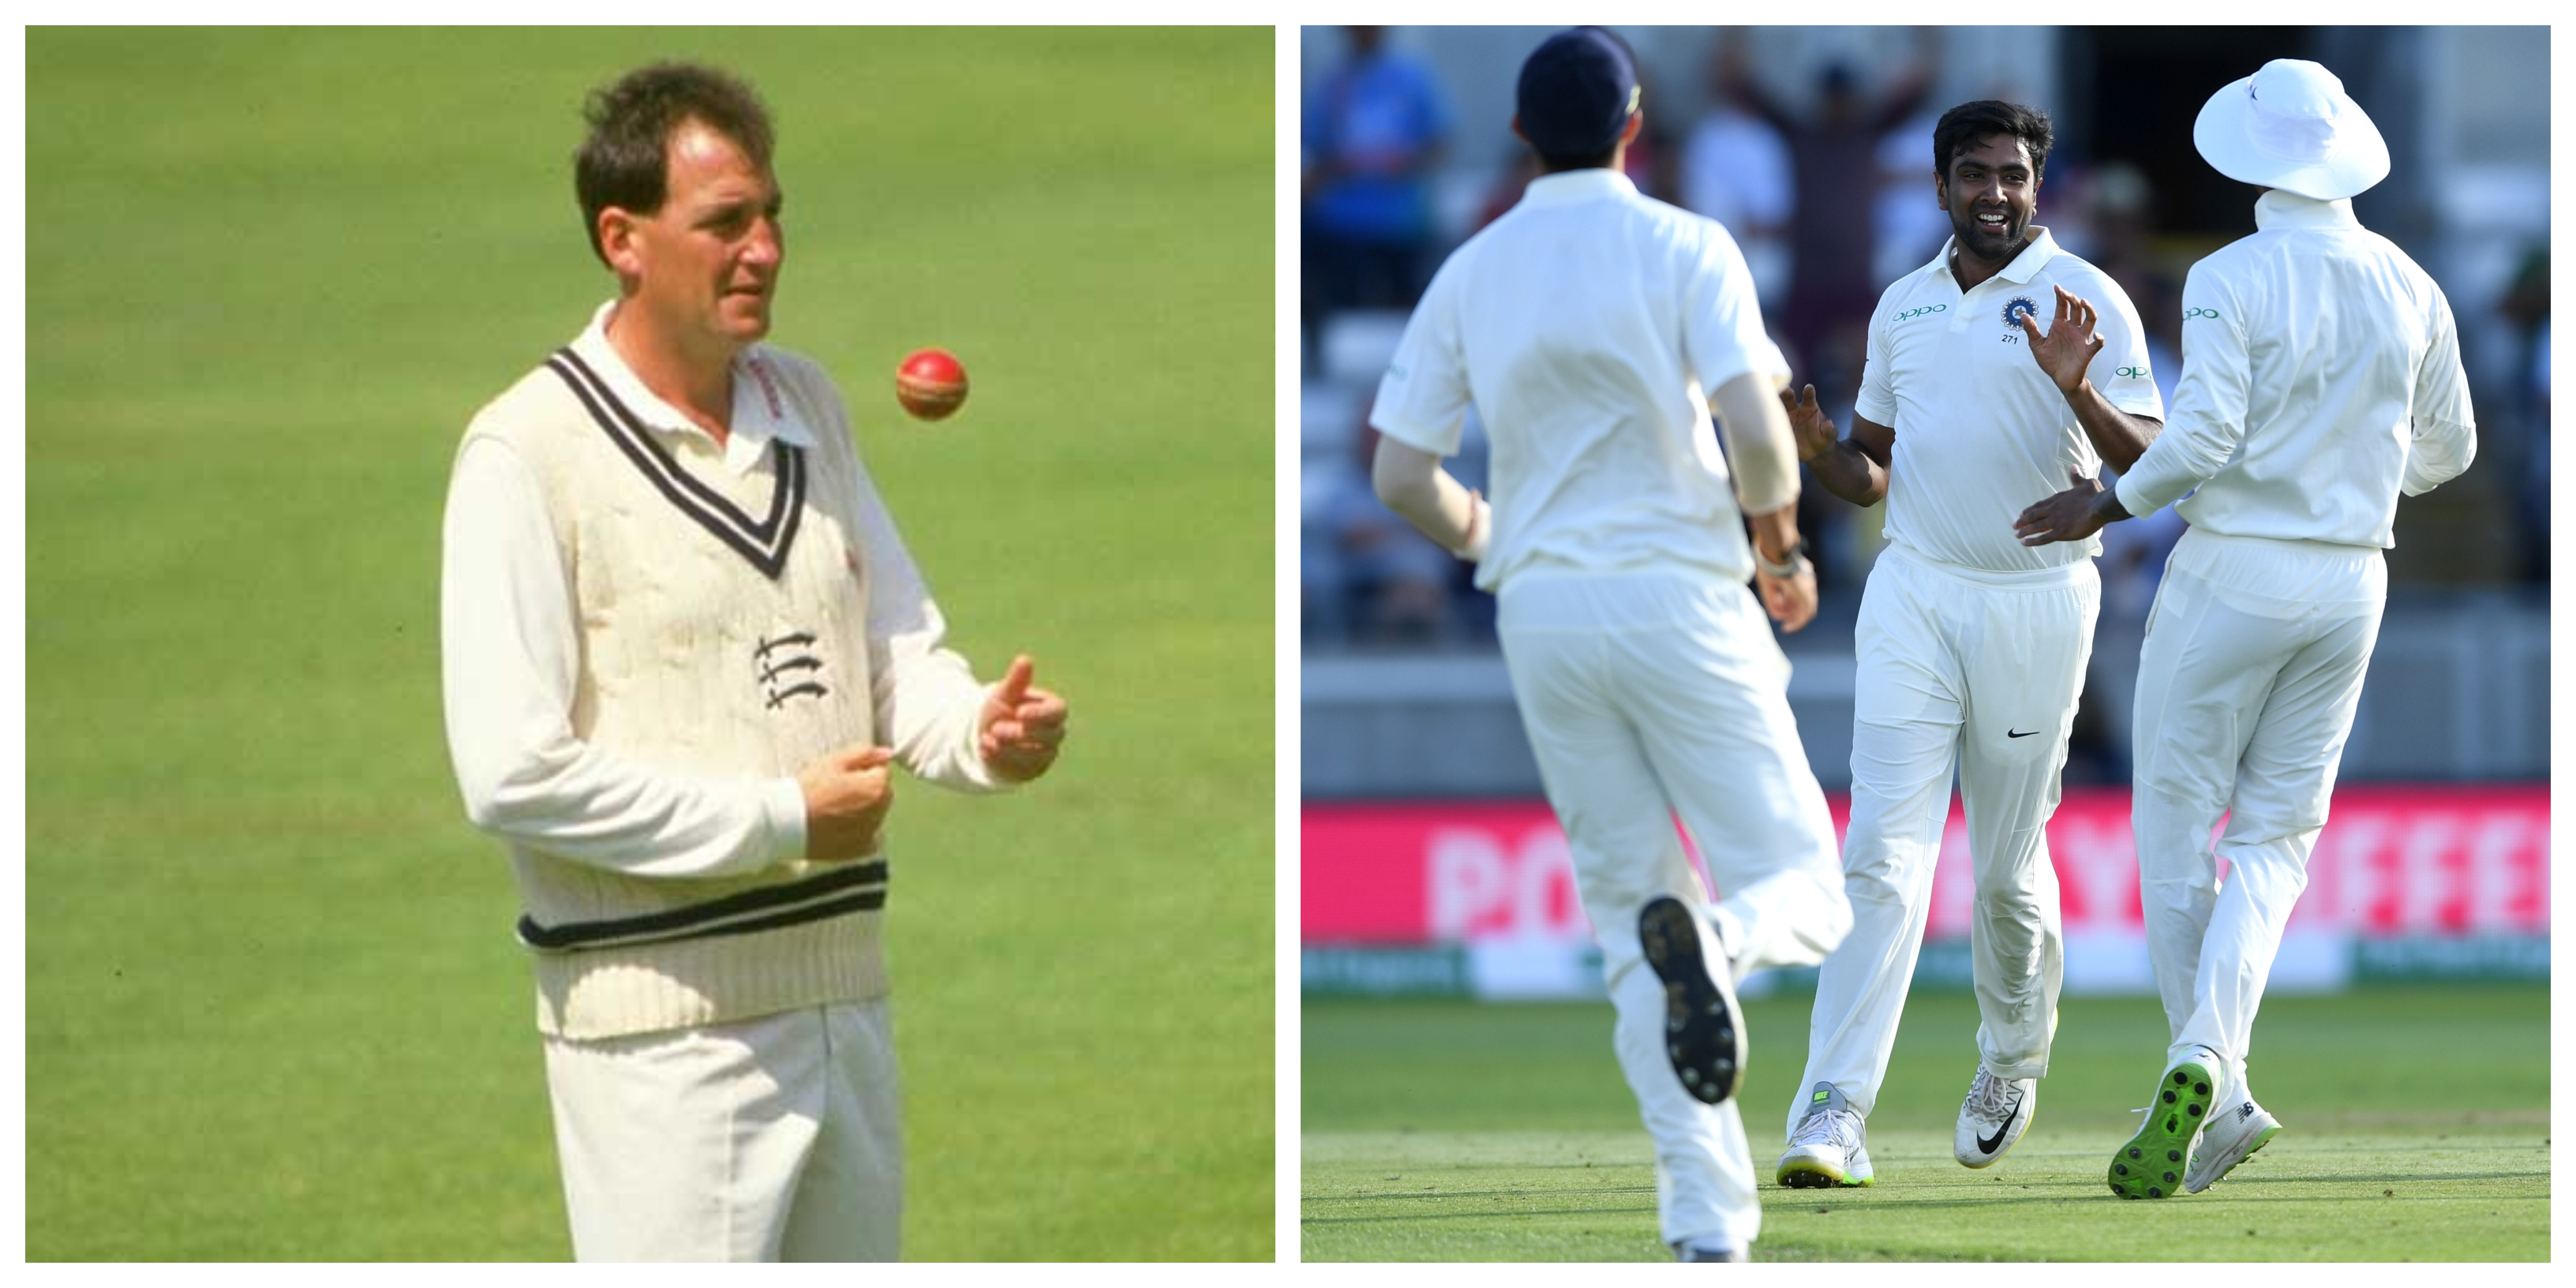 John Emburey is mighty impressed with Ravichandran Ashwin.